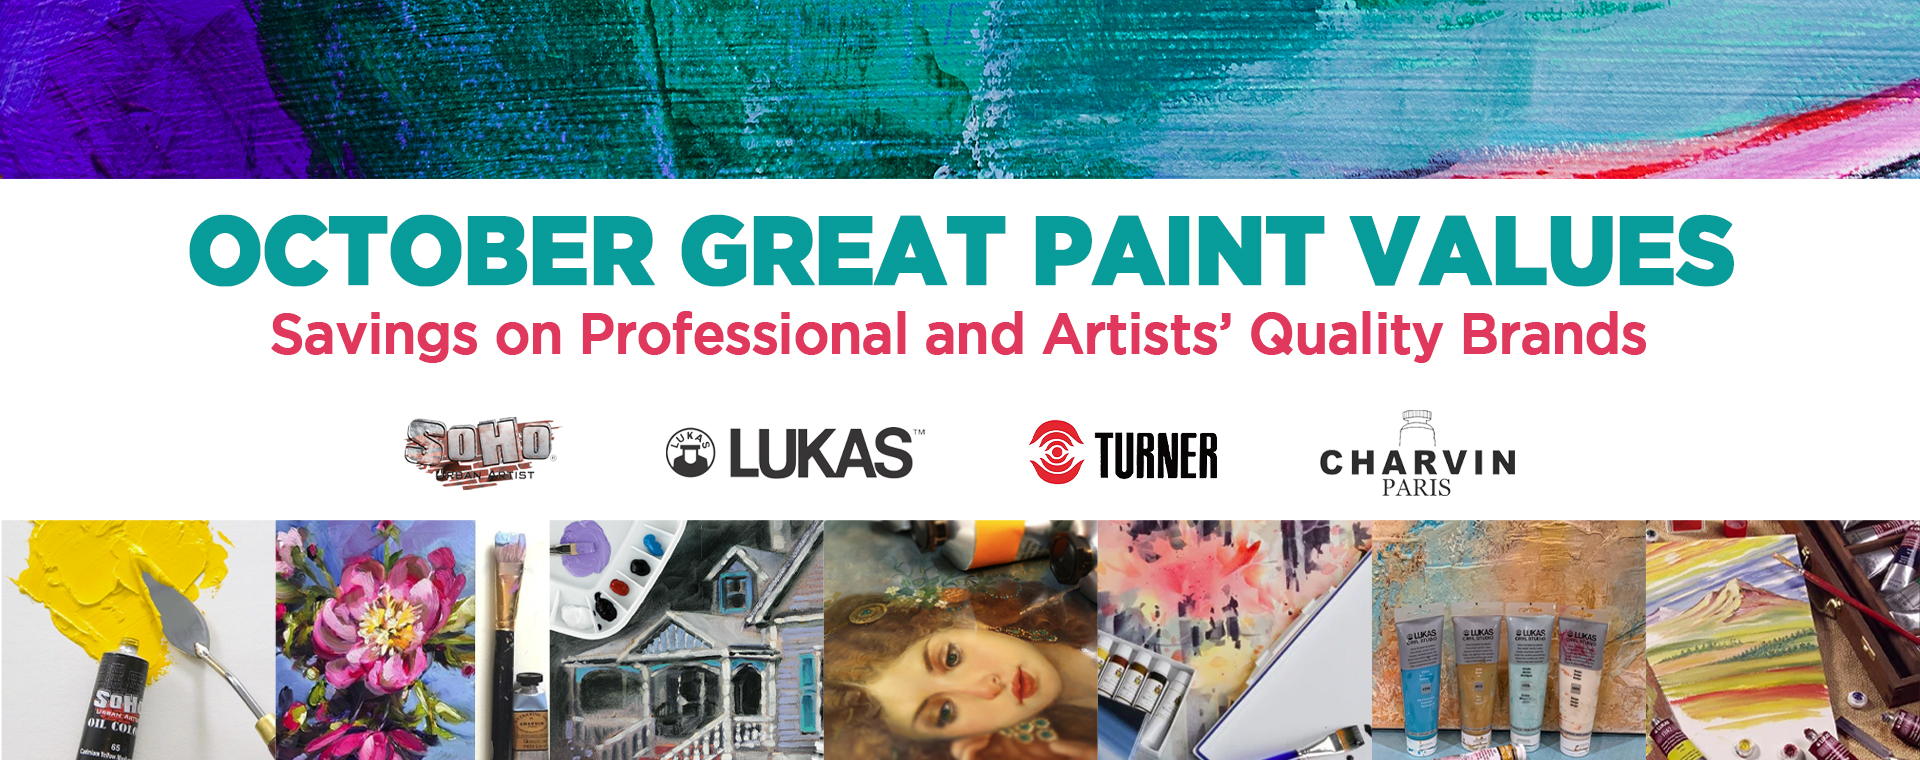 October Great Paint Values